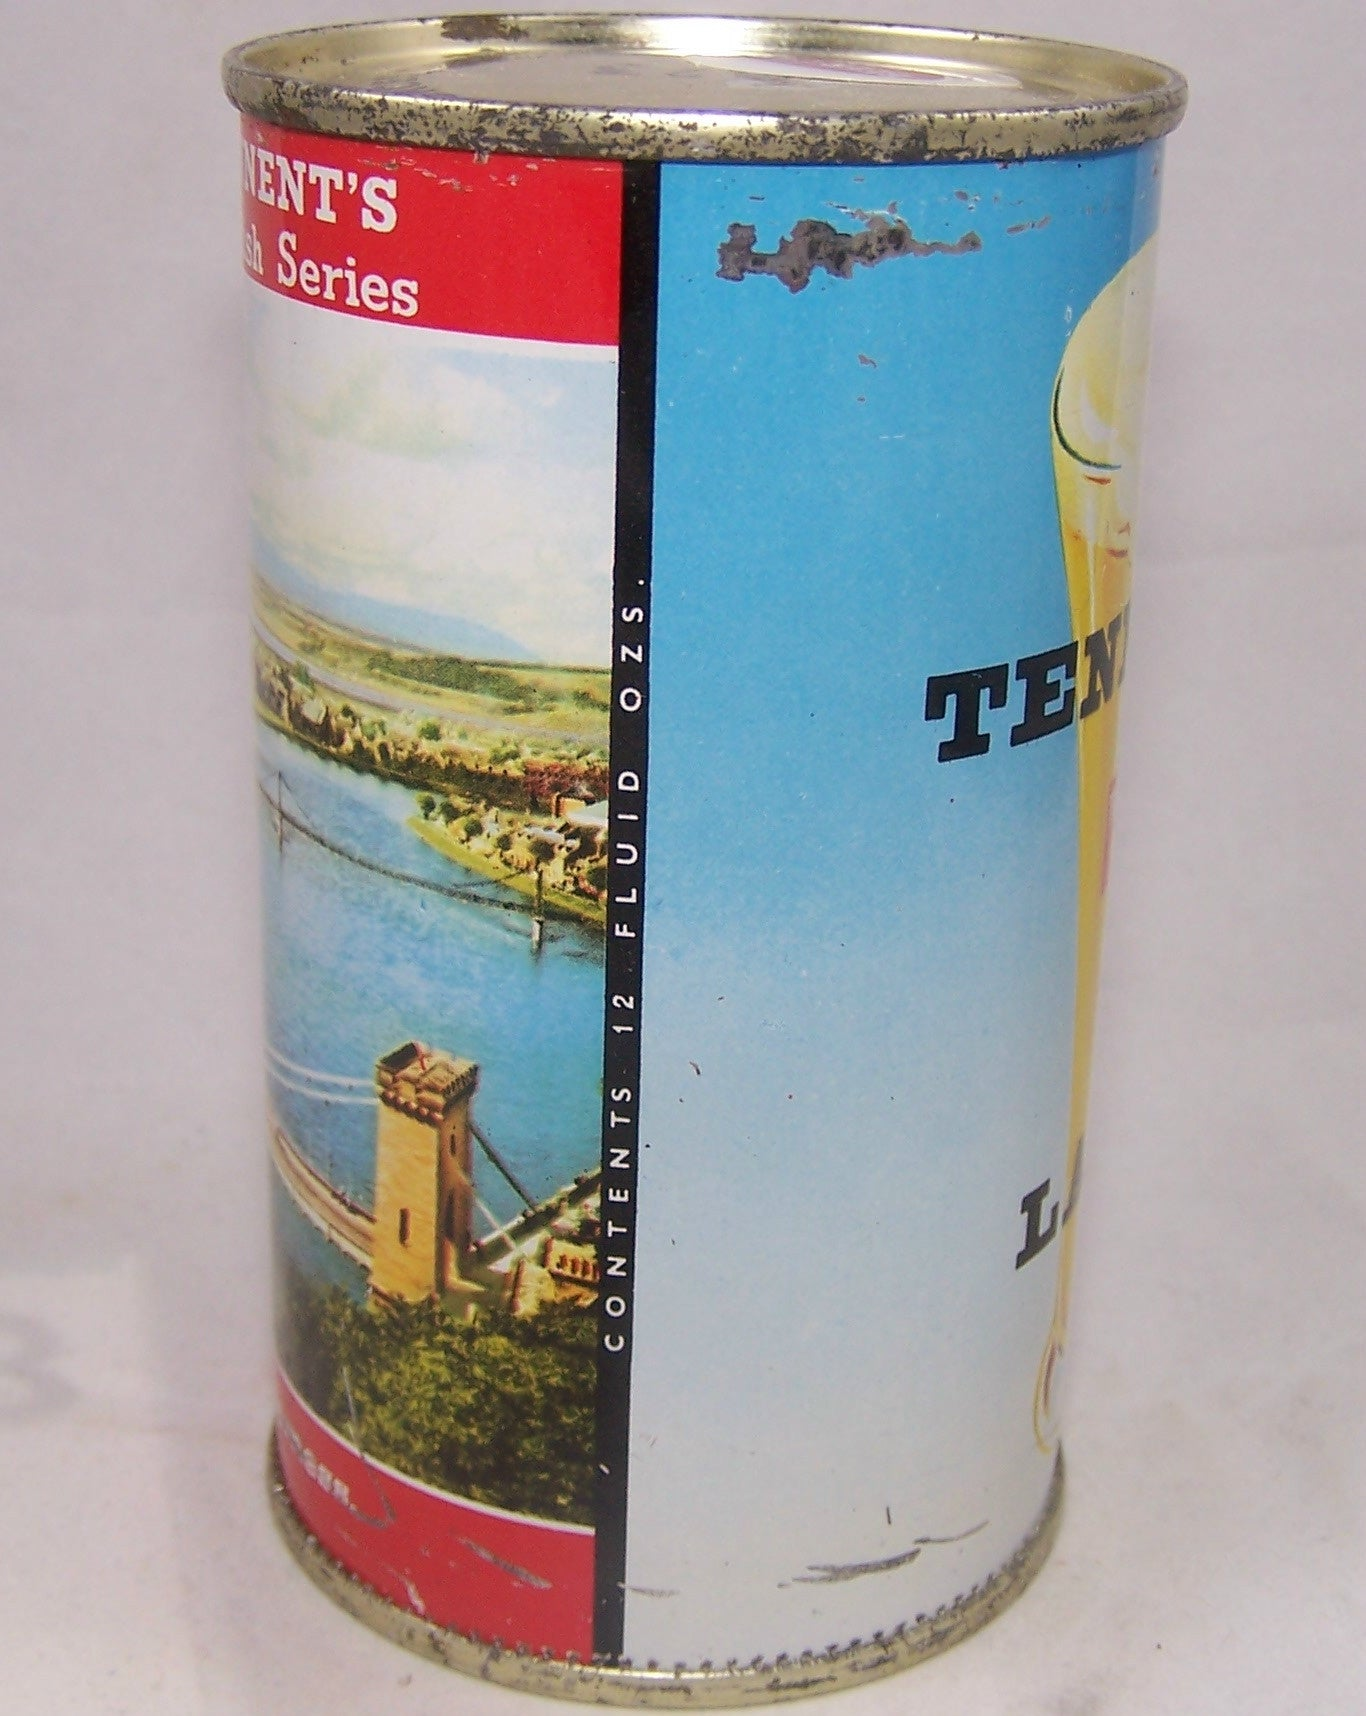 Tennent's Lager Scottish Series, (Inverness) Grade 1-